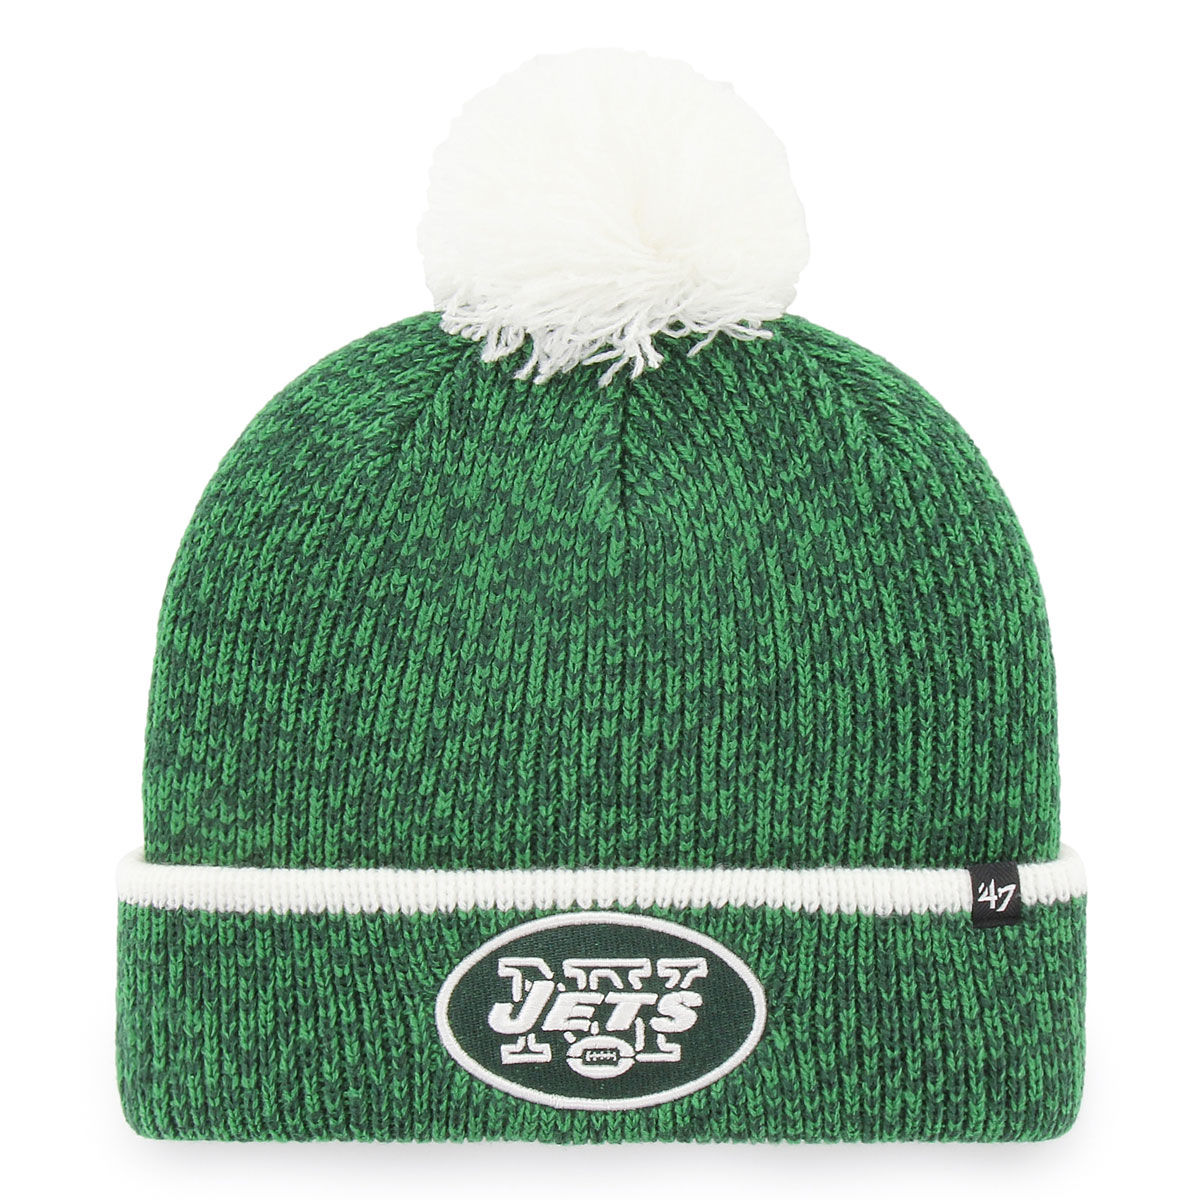 New York Jets Adult 2018 Fairbanks Pom Knit Hat